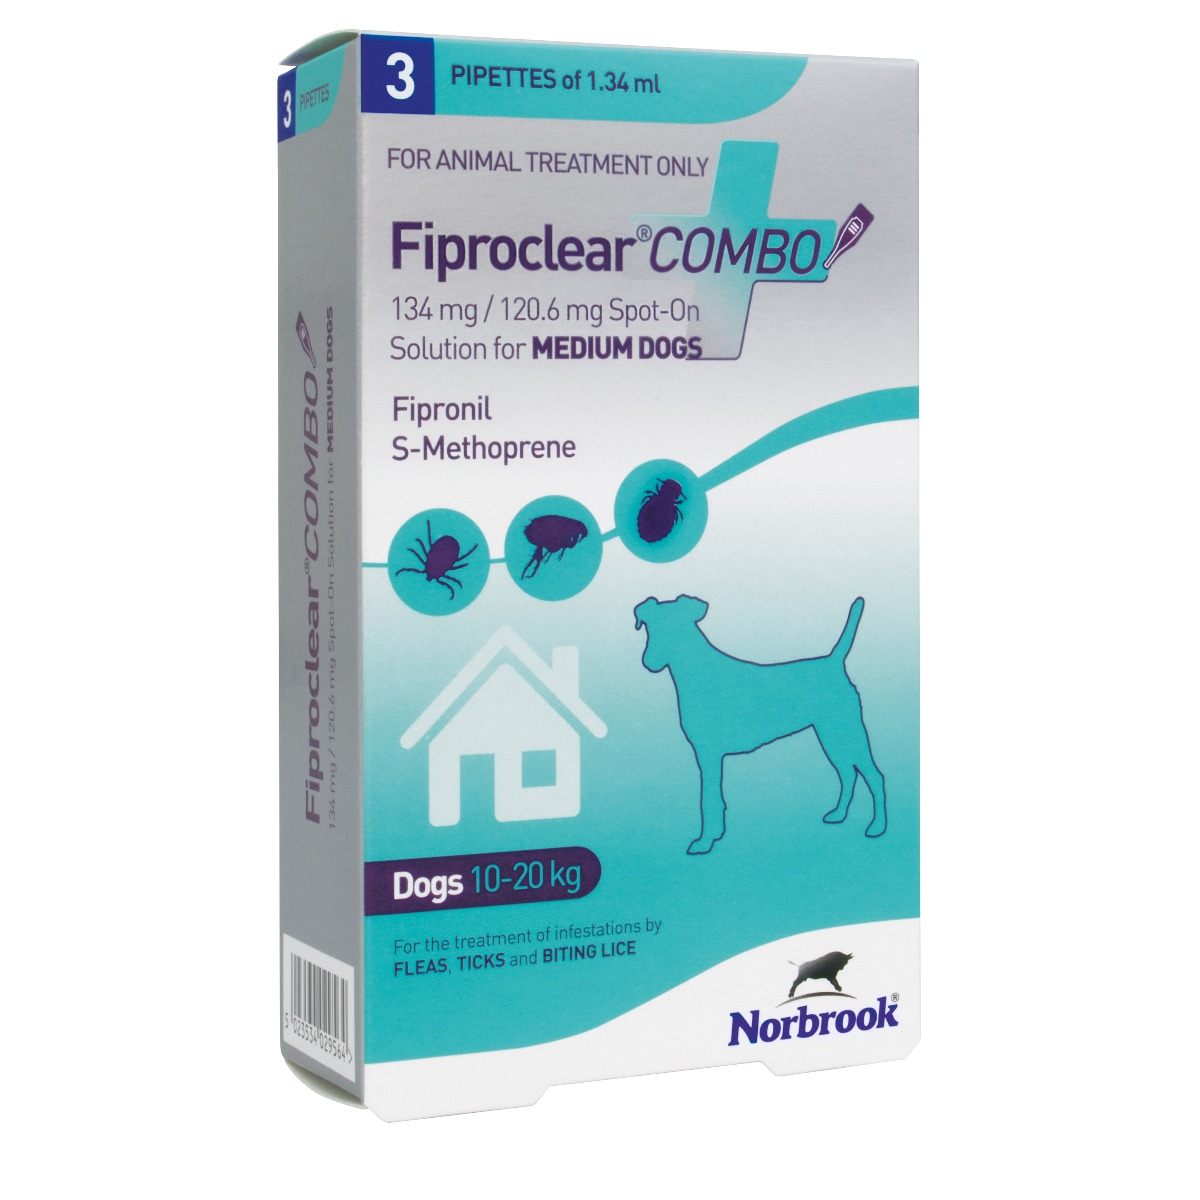 Fiproclear Combo Spot On Solution for Medium Dogs (10-20kg) - Pack of 3 on Animed Direct